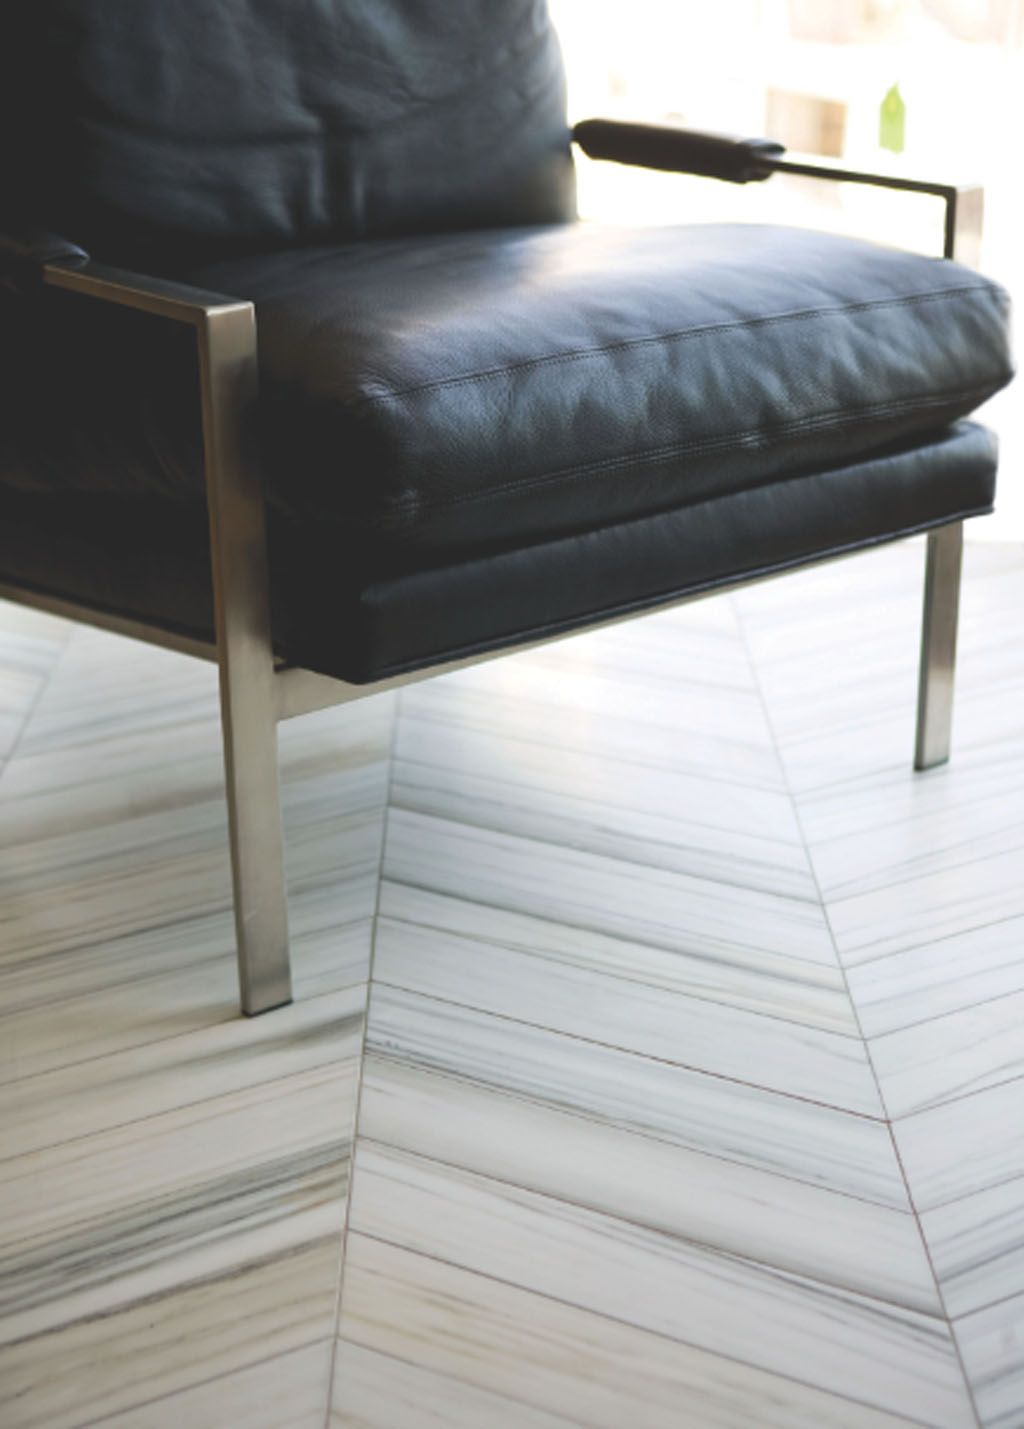 Herringbone marble floor gorgeous a study in aesthetics walker zanger helsinki chevron tiles in silver dusk dailygadgetfo Image collections